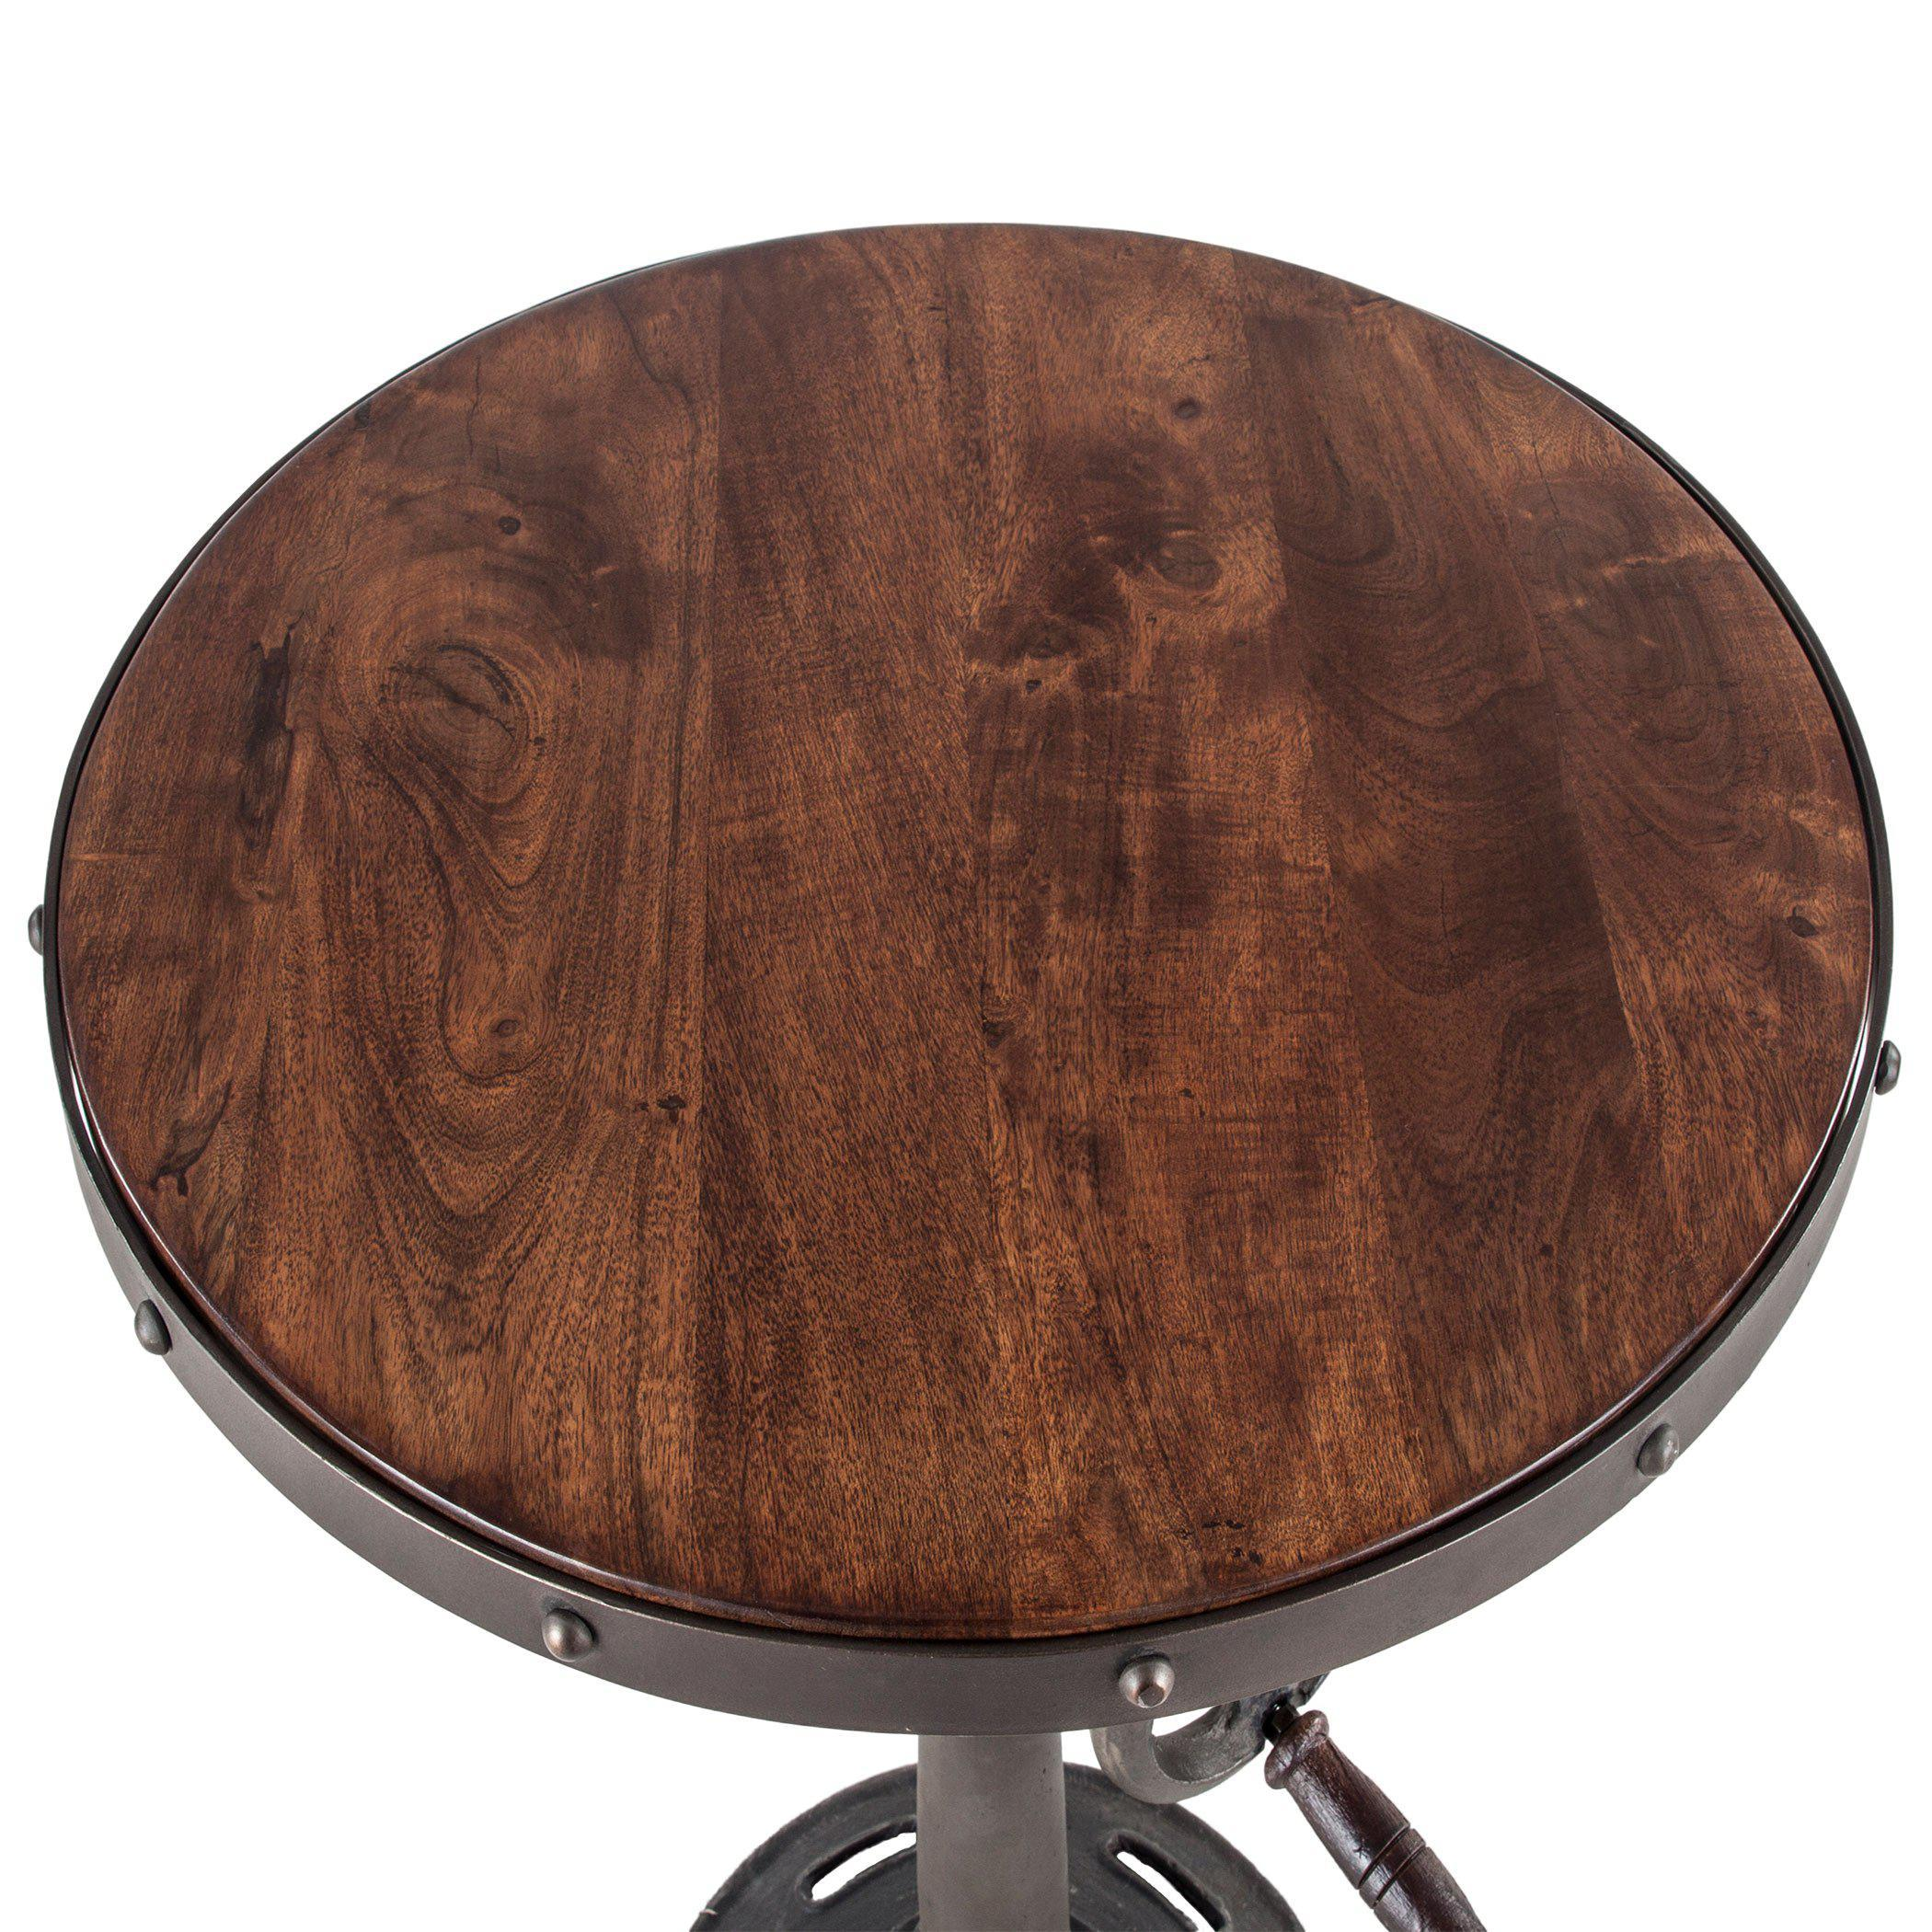 Artezia 25-Inch Round Adjustable Acacia Wood Side Table